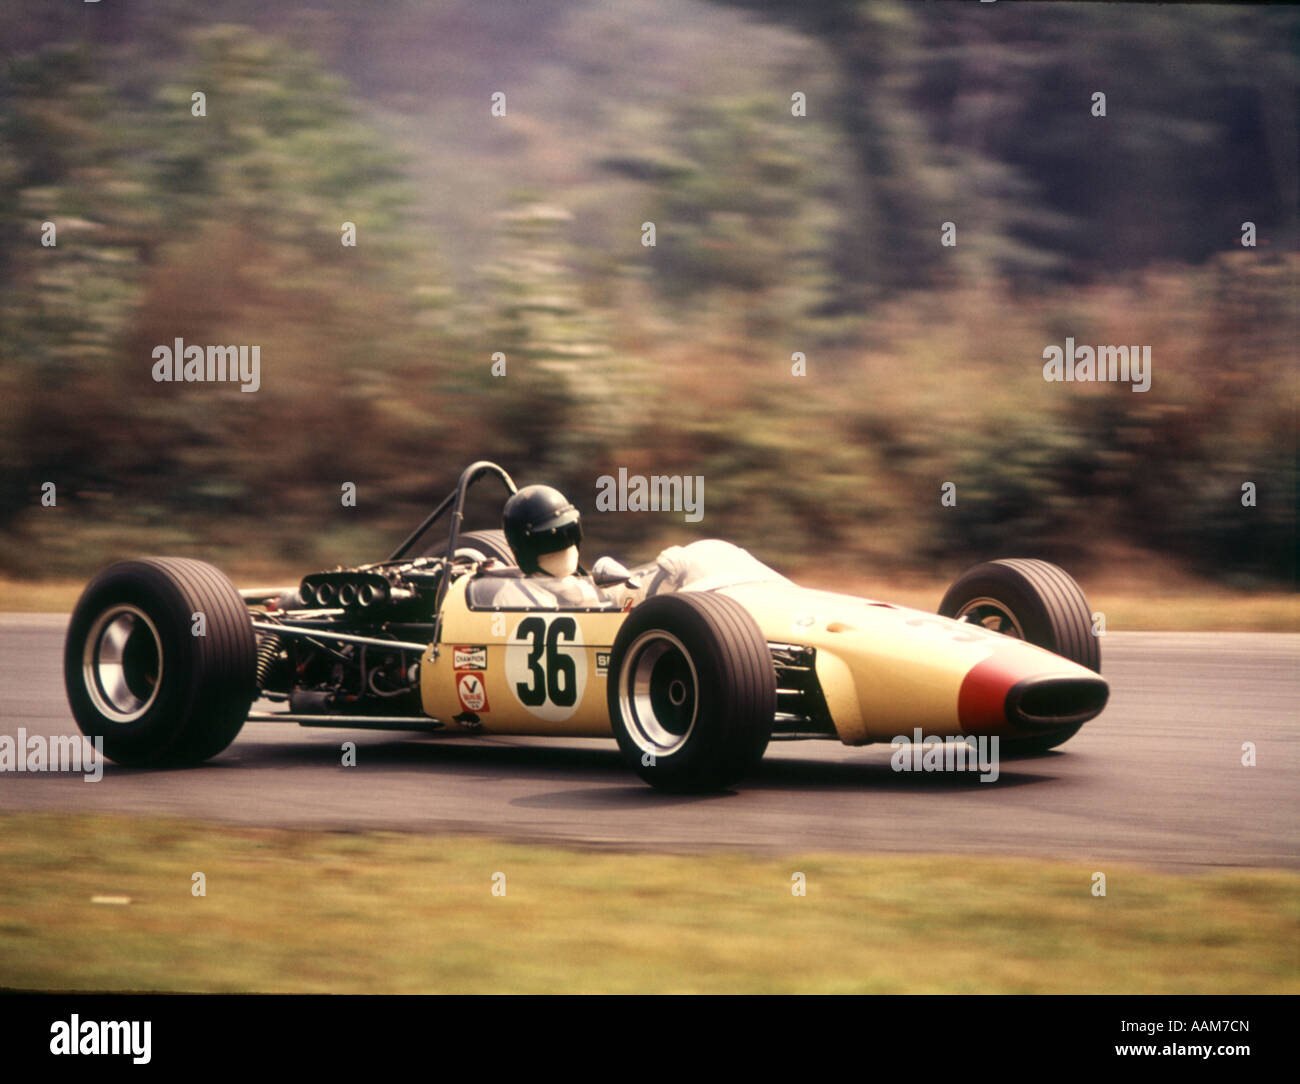 Yellow Race Racing Car Number Sports Cars Racer Driver